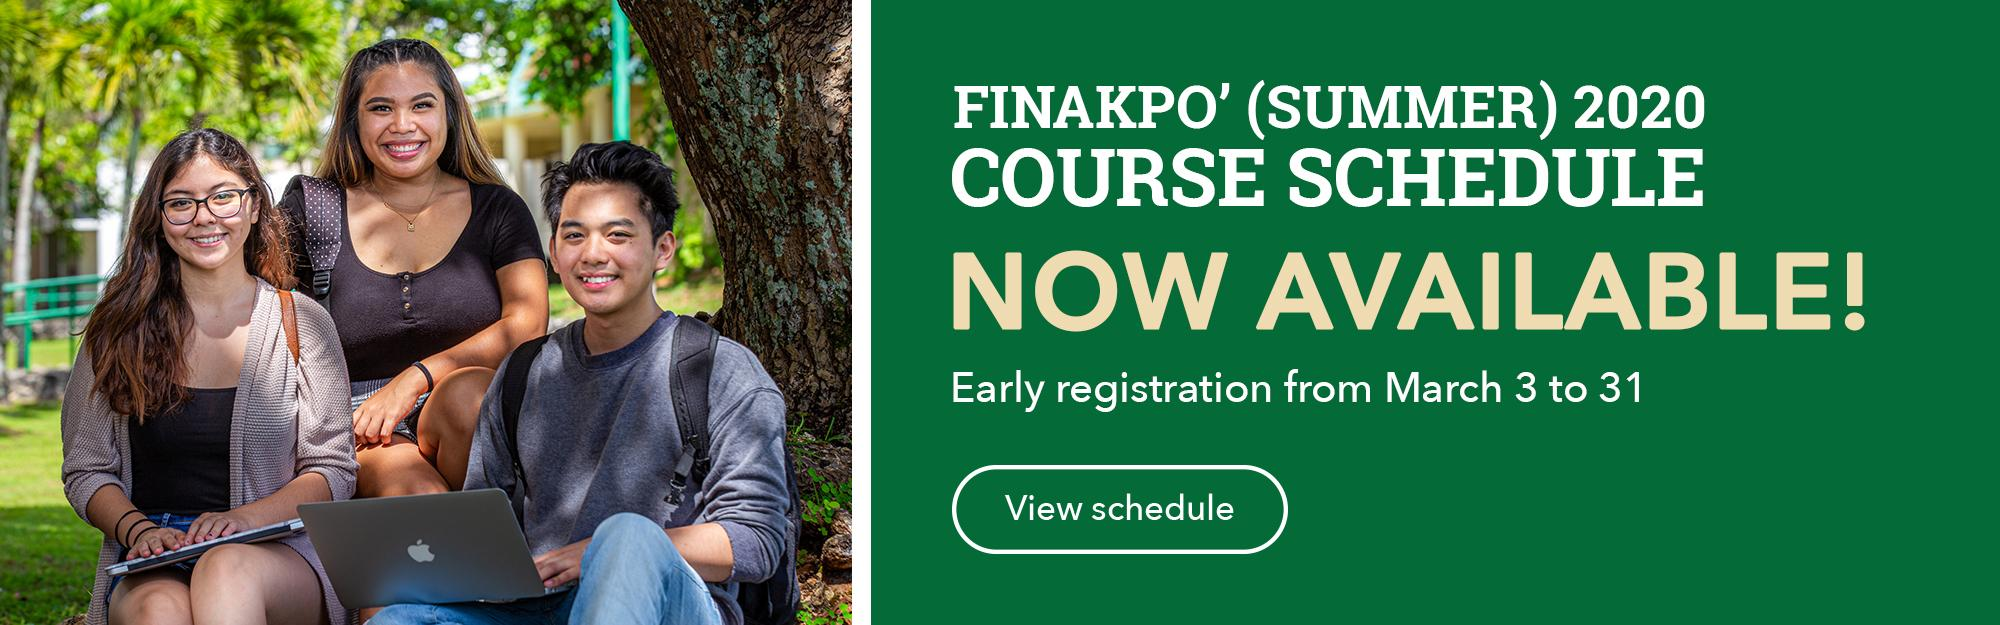 Click to view the Finakpo' 2020 Course Schedule